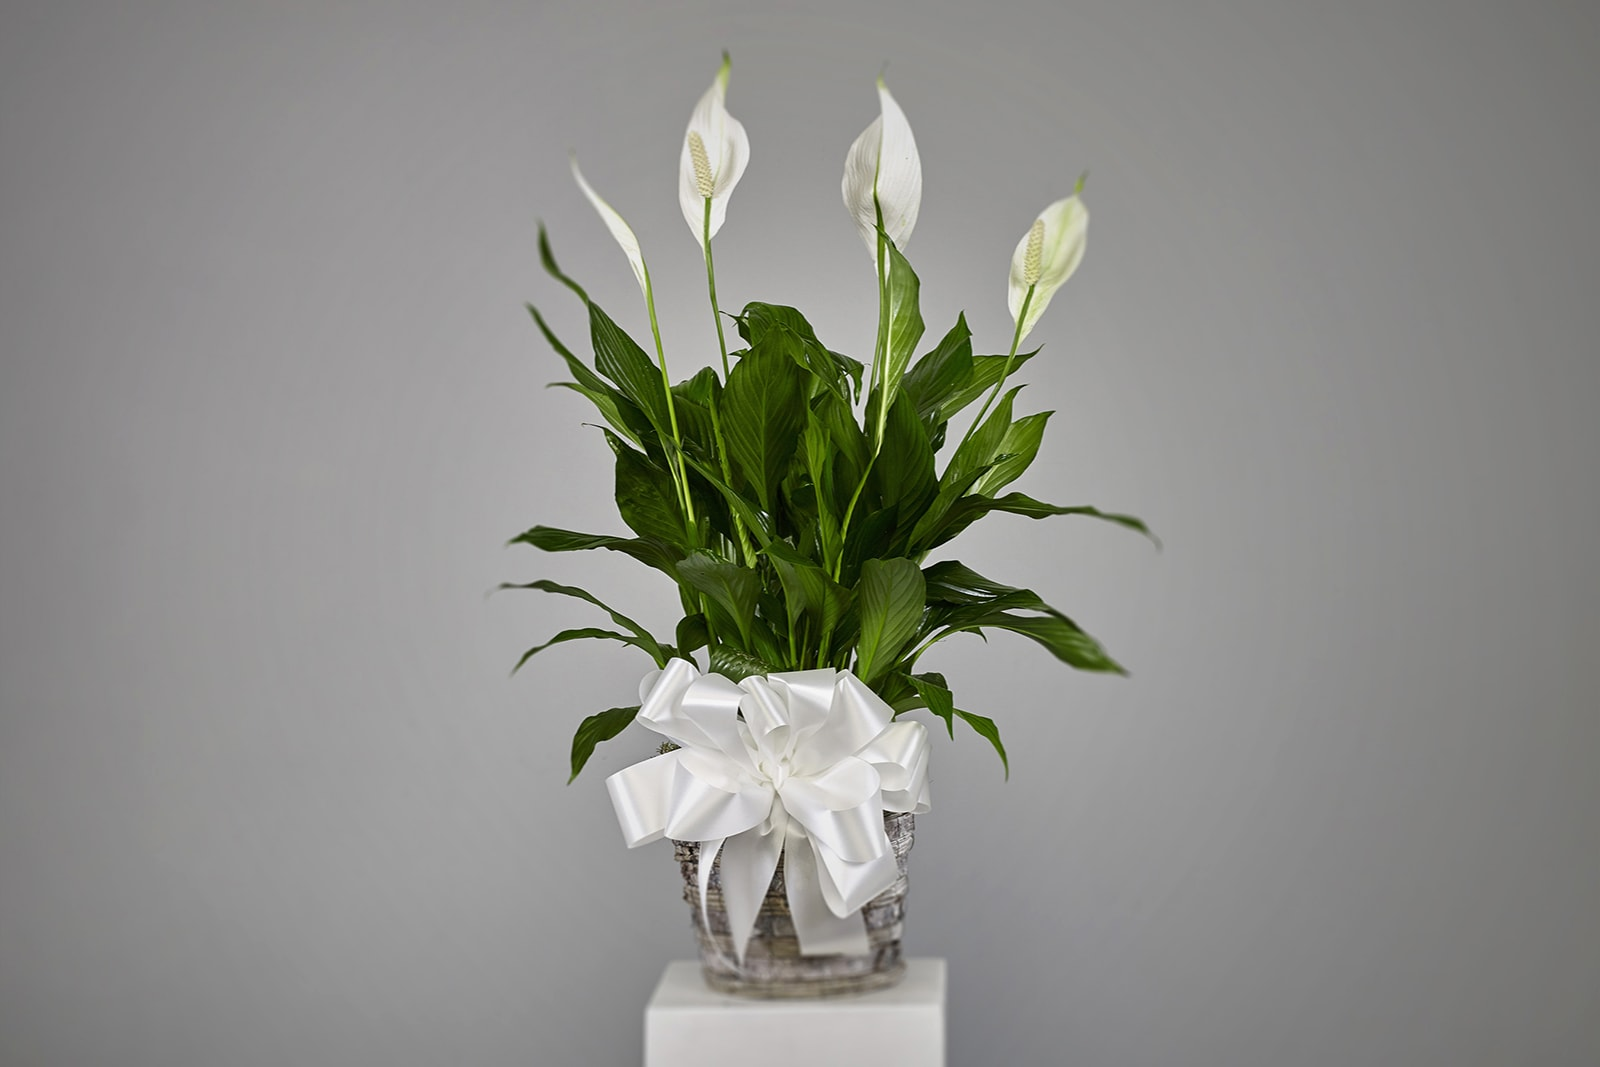 EXQUSITE PEACE LILY PLANT in Los Angeles, CA | FLOWERS PRONTO on peace lily family plant, chinese evergreen house plant, droopy peace lily plant, funeral peace lily plant, peace lily potted plant, peace lily plant benefits, classic peace lily plant, black bamboo potted plant, white and green leaves house plant, croton house plant, peace plant brown leaves, dragon plant, holly house plant, zamiifolia house plant, problems with peace lily plant, weeping fig house plant, marginata house plant, artificial bamboo house plant, black gold lily plant, pineapple plant house plant,